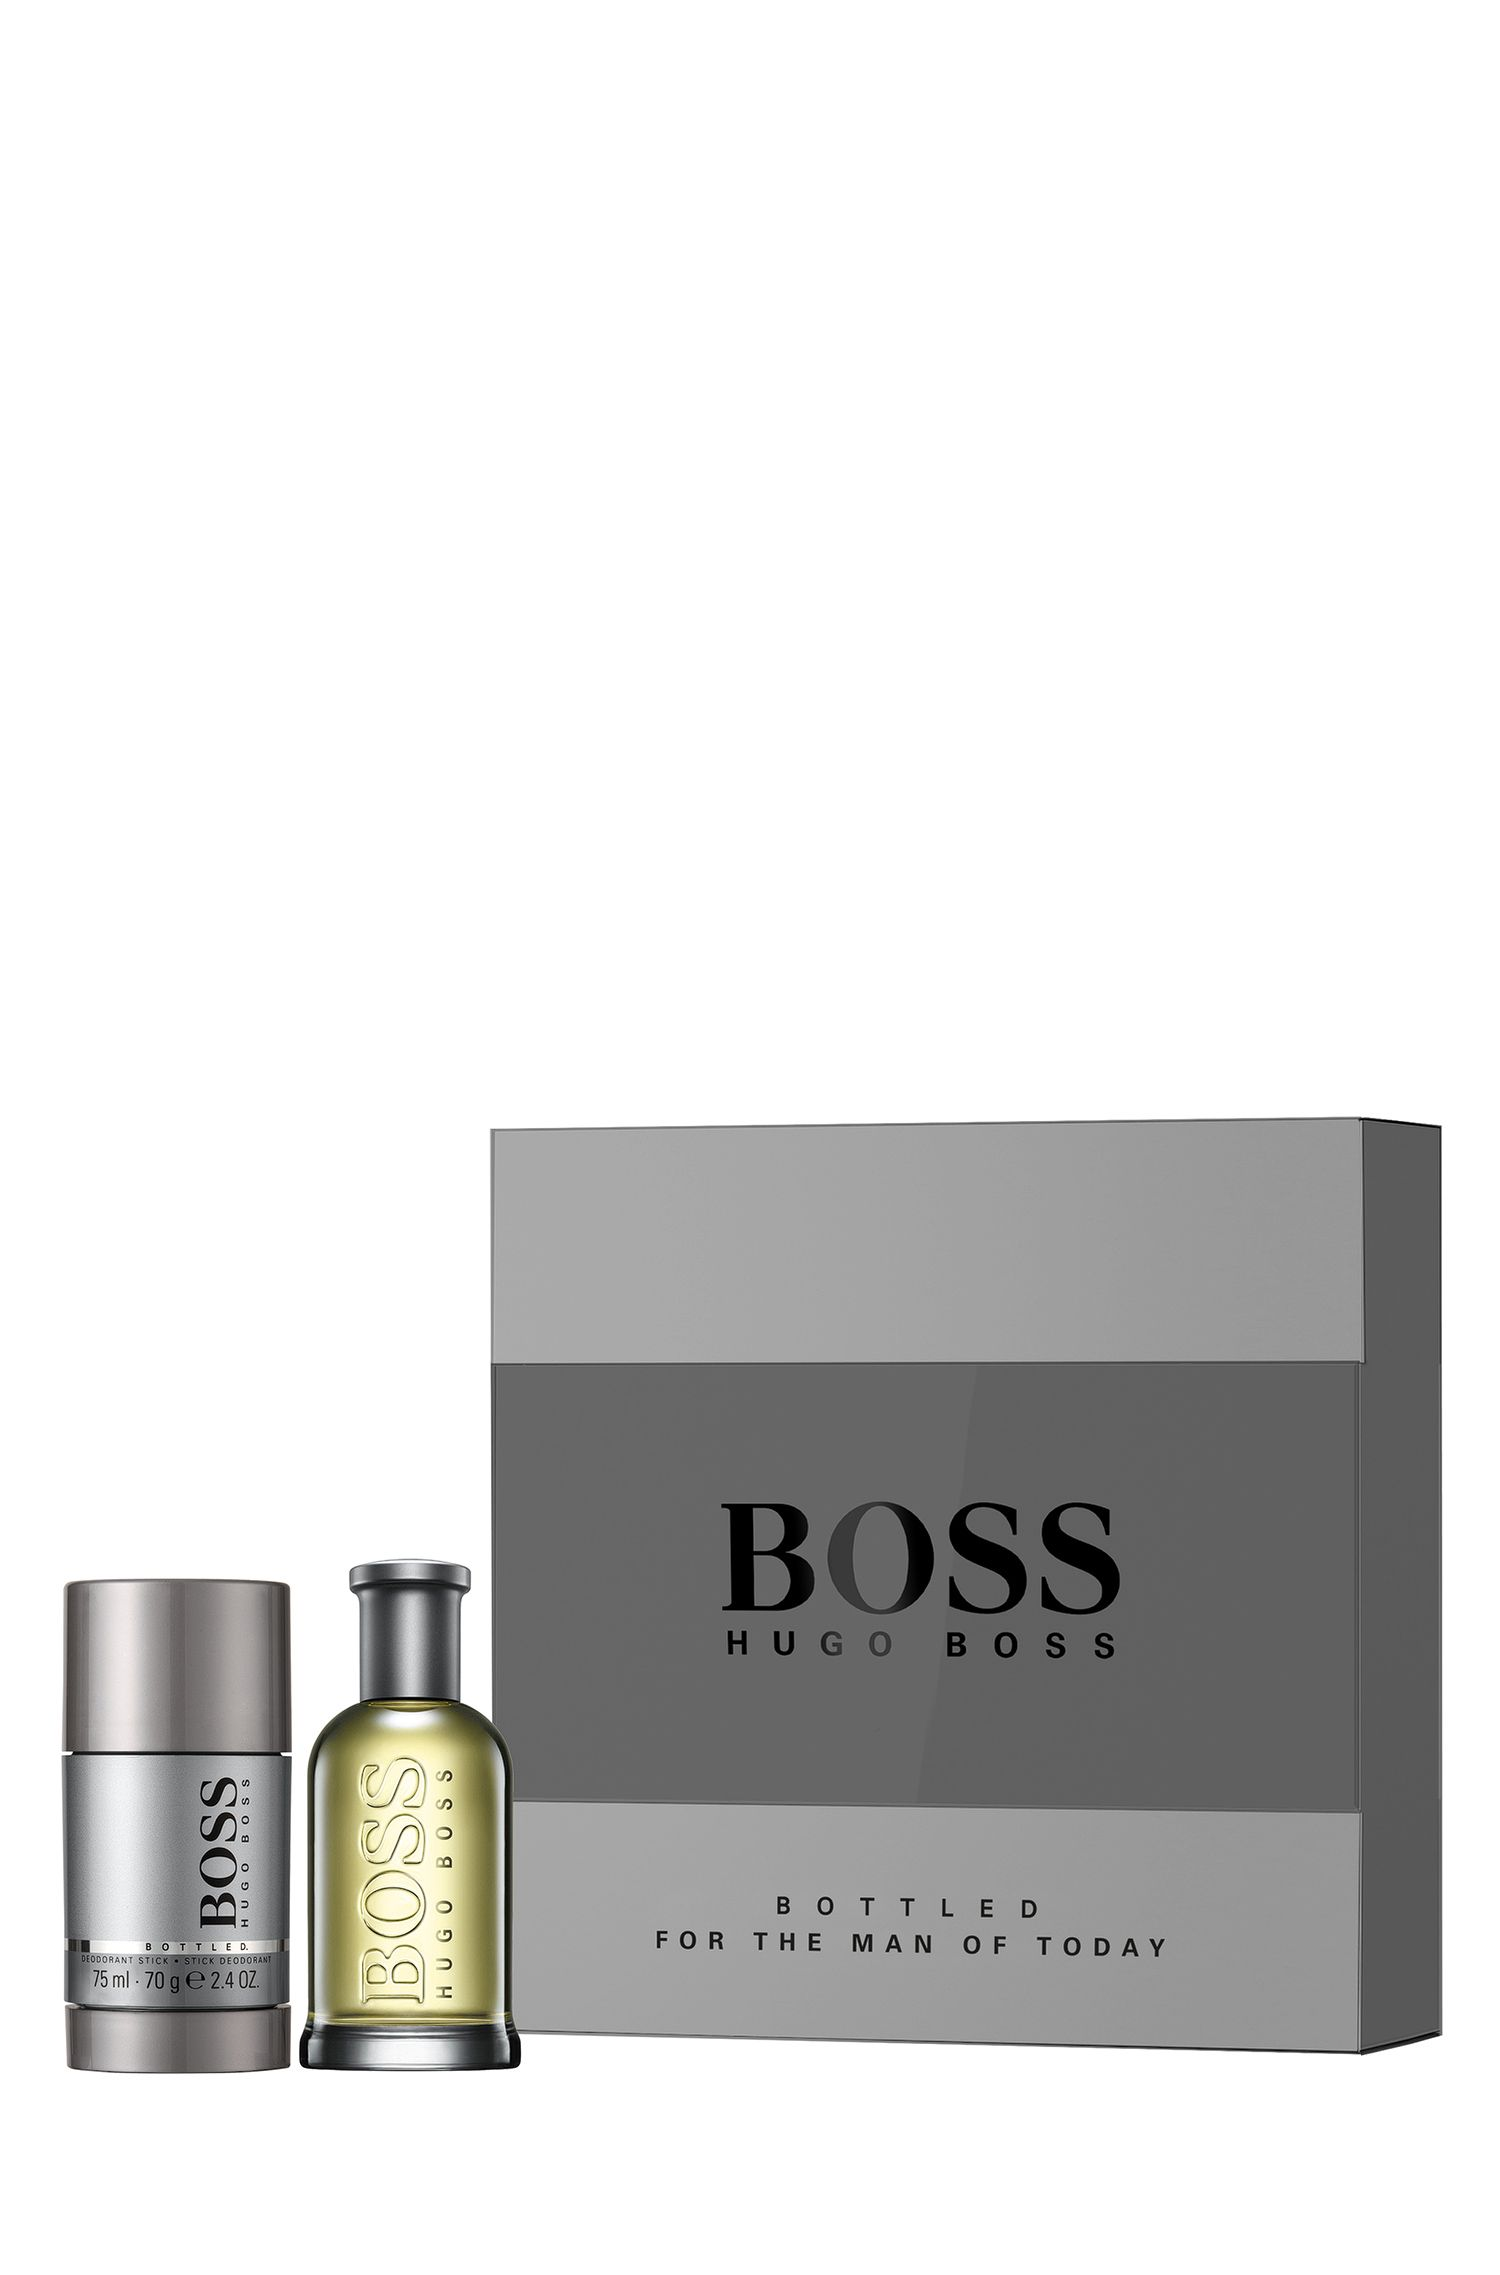 Gift set 'BOSS Bottled' with Eau de Toilette 50 ml and Deodorant Stick